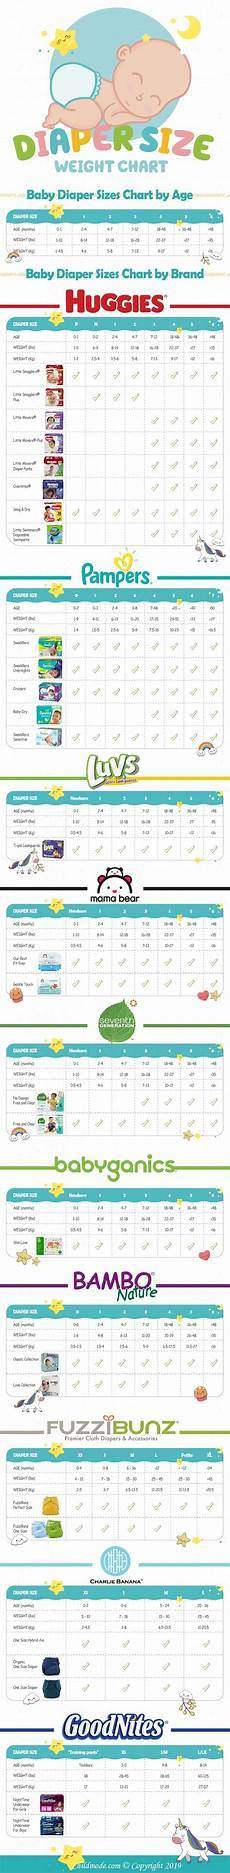 Luvs Size Chart Diaper Size Chart Infographic So Helpful In Getitng A